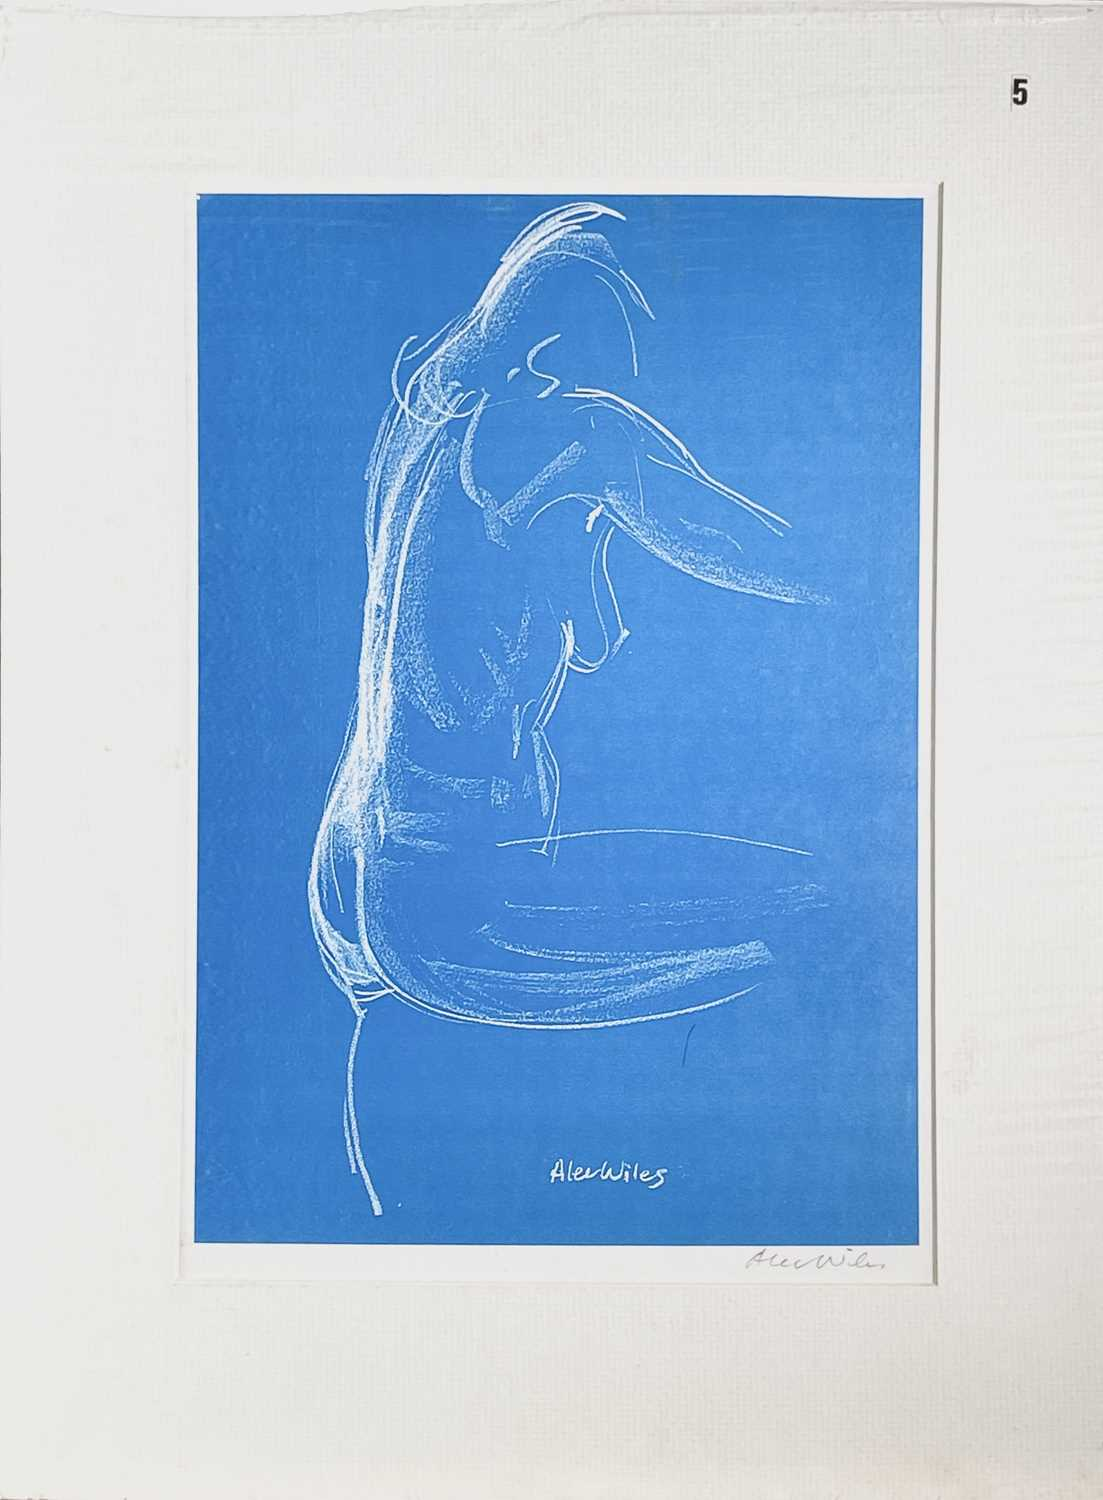 Alec WILES (1924) Various works including prints - Image 28 of 30